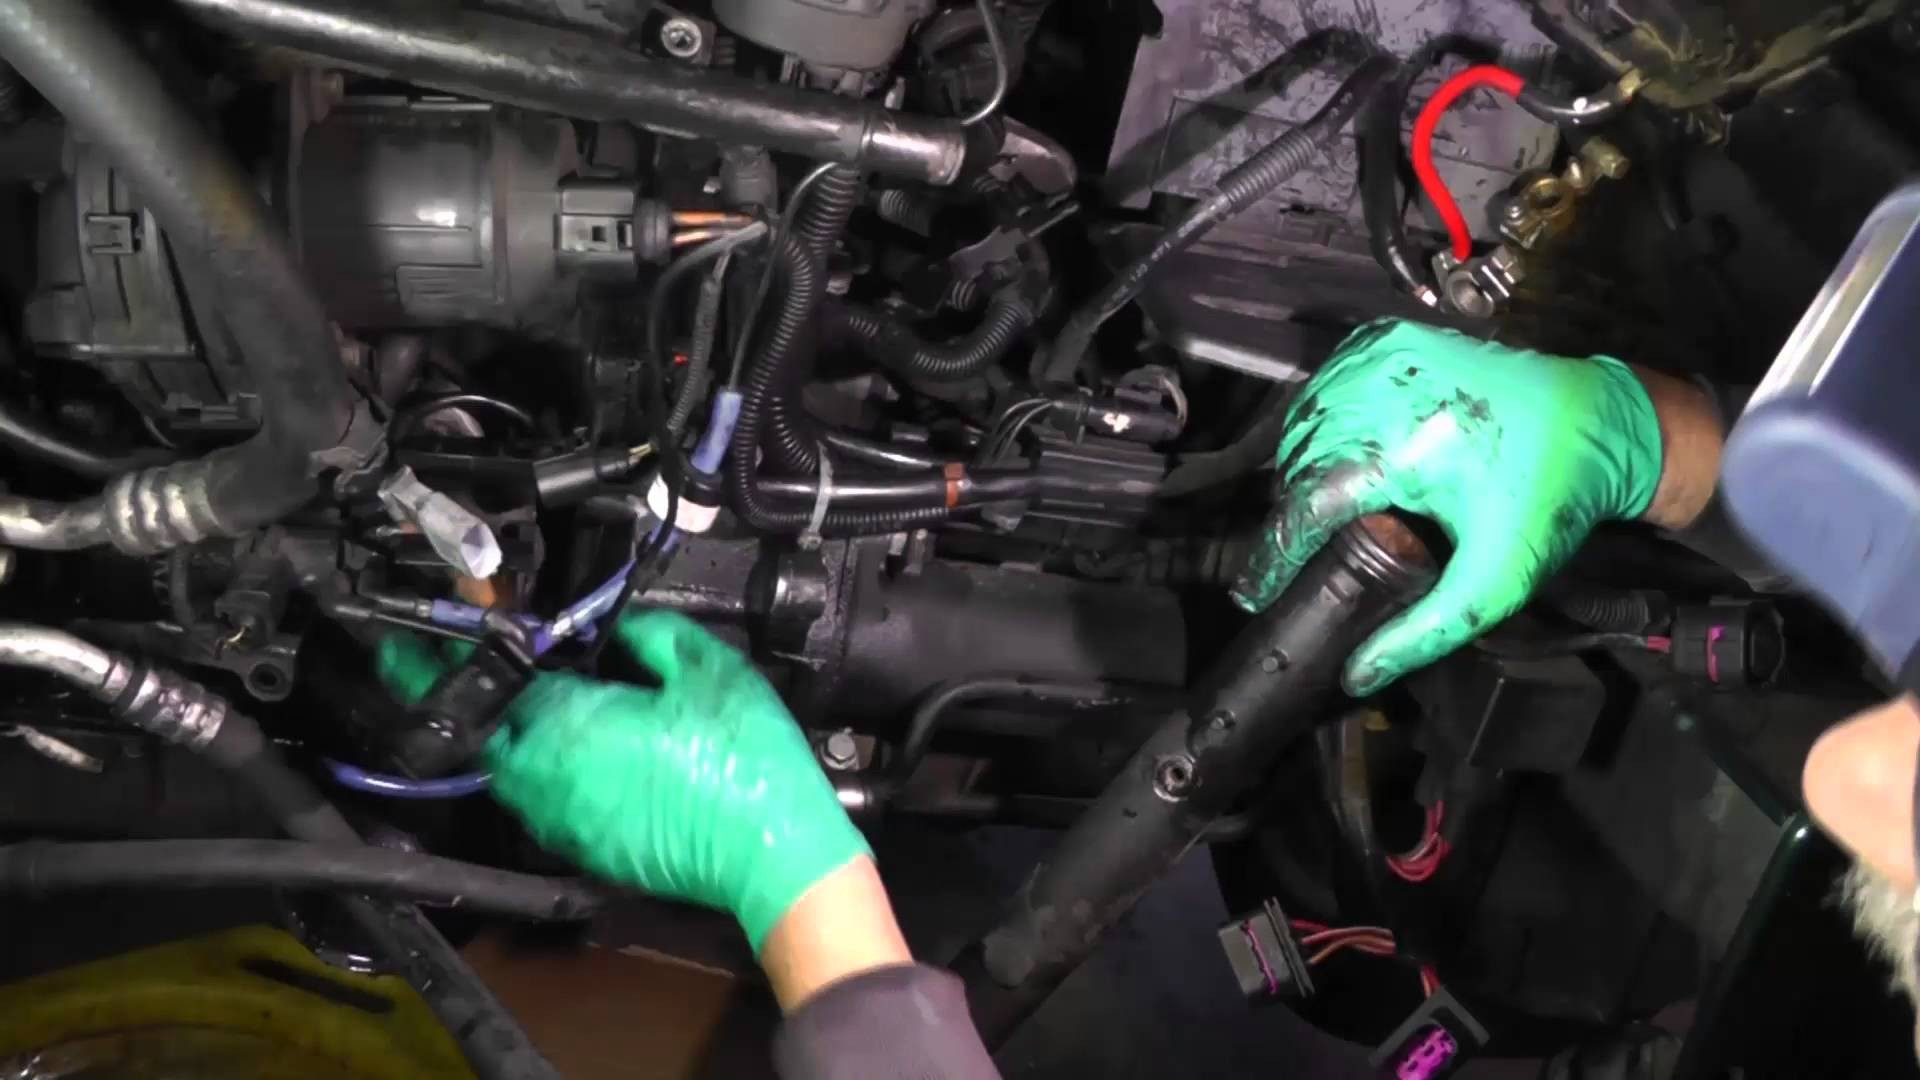 2001 Vw Jetta Vr6 Engine Diagram Timing Belt Volkswagen Removal Of Coolant Pipe Oil Filter Canister